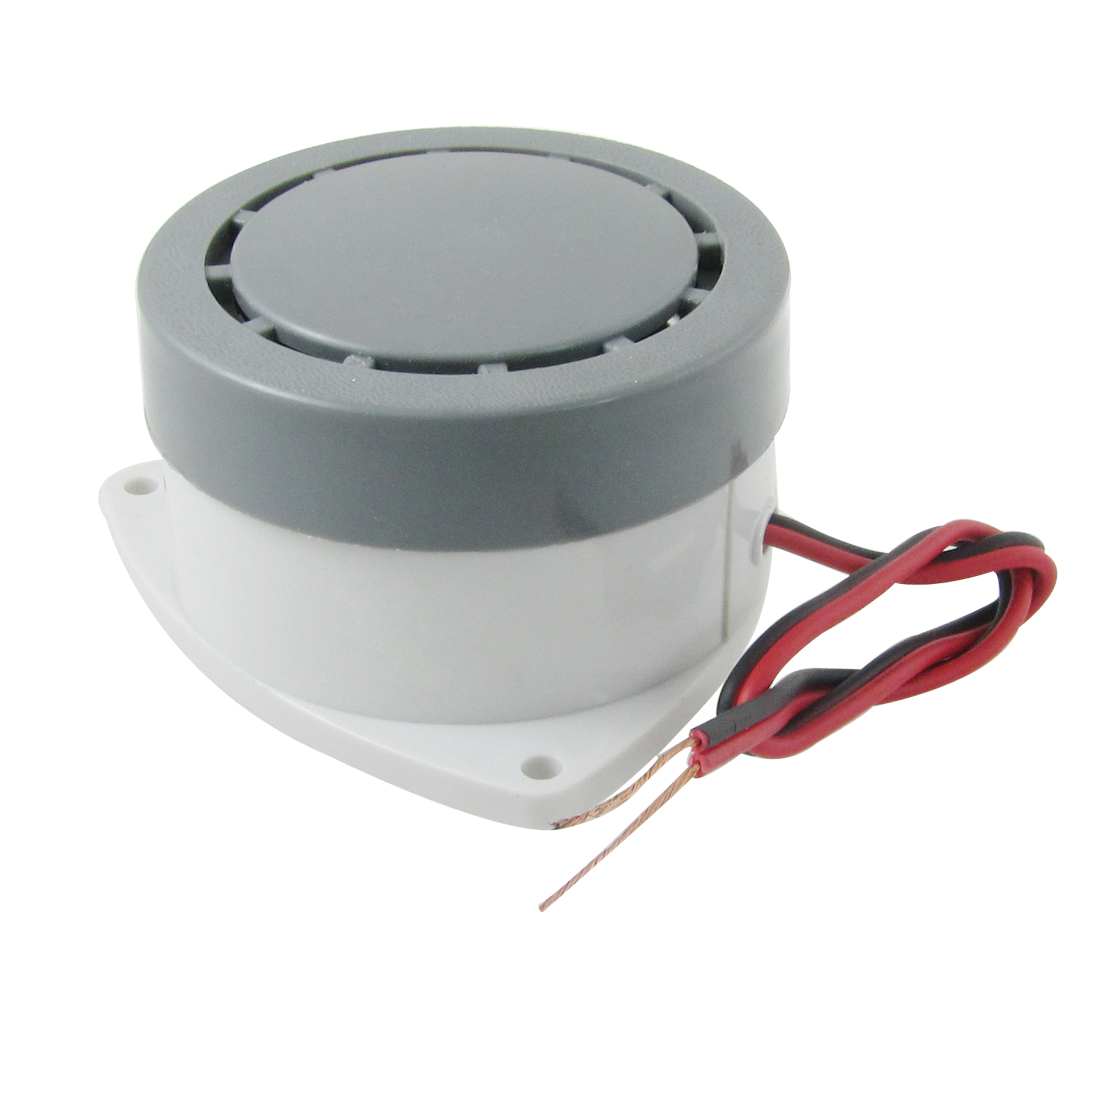 Plastic-Housing-AC-200-220V-80dB-Flush-Mounting-Alarm-Buzzer-HRB-N80